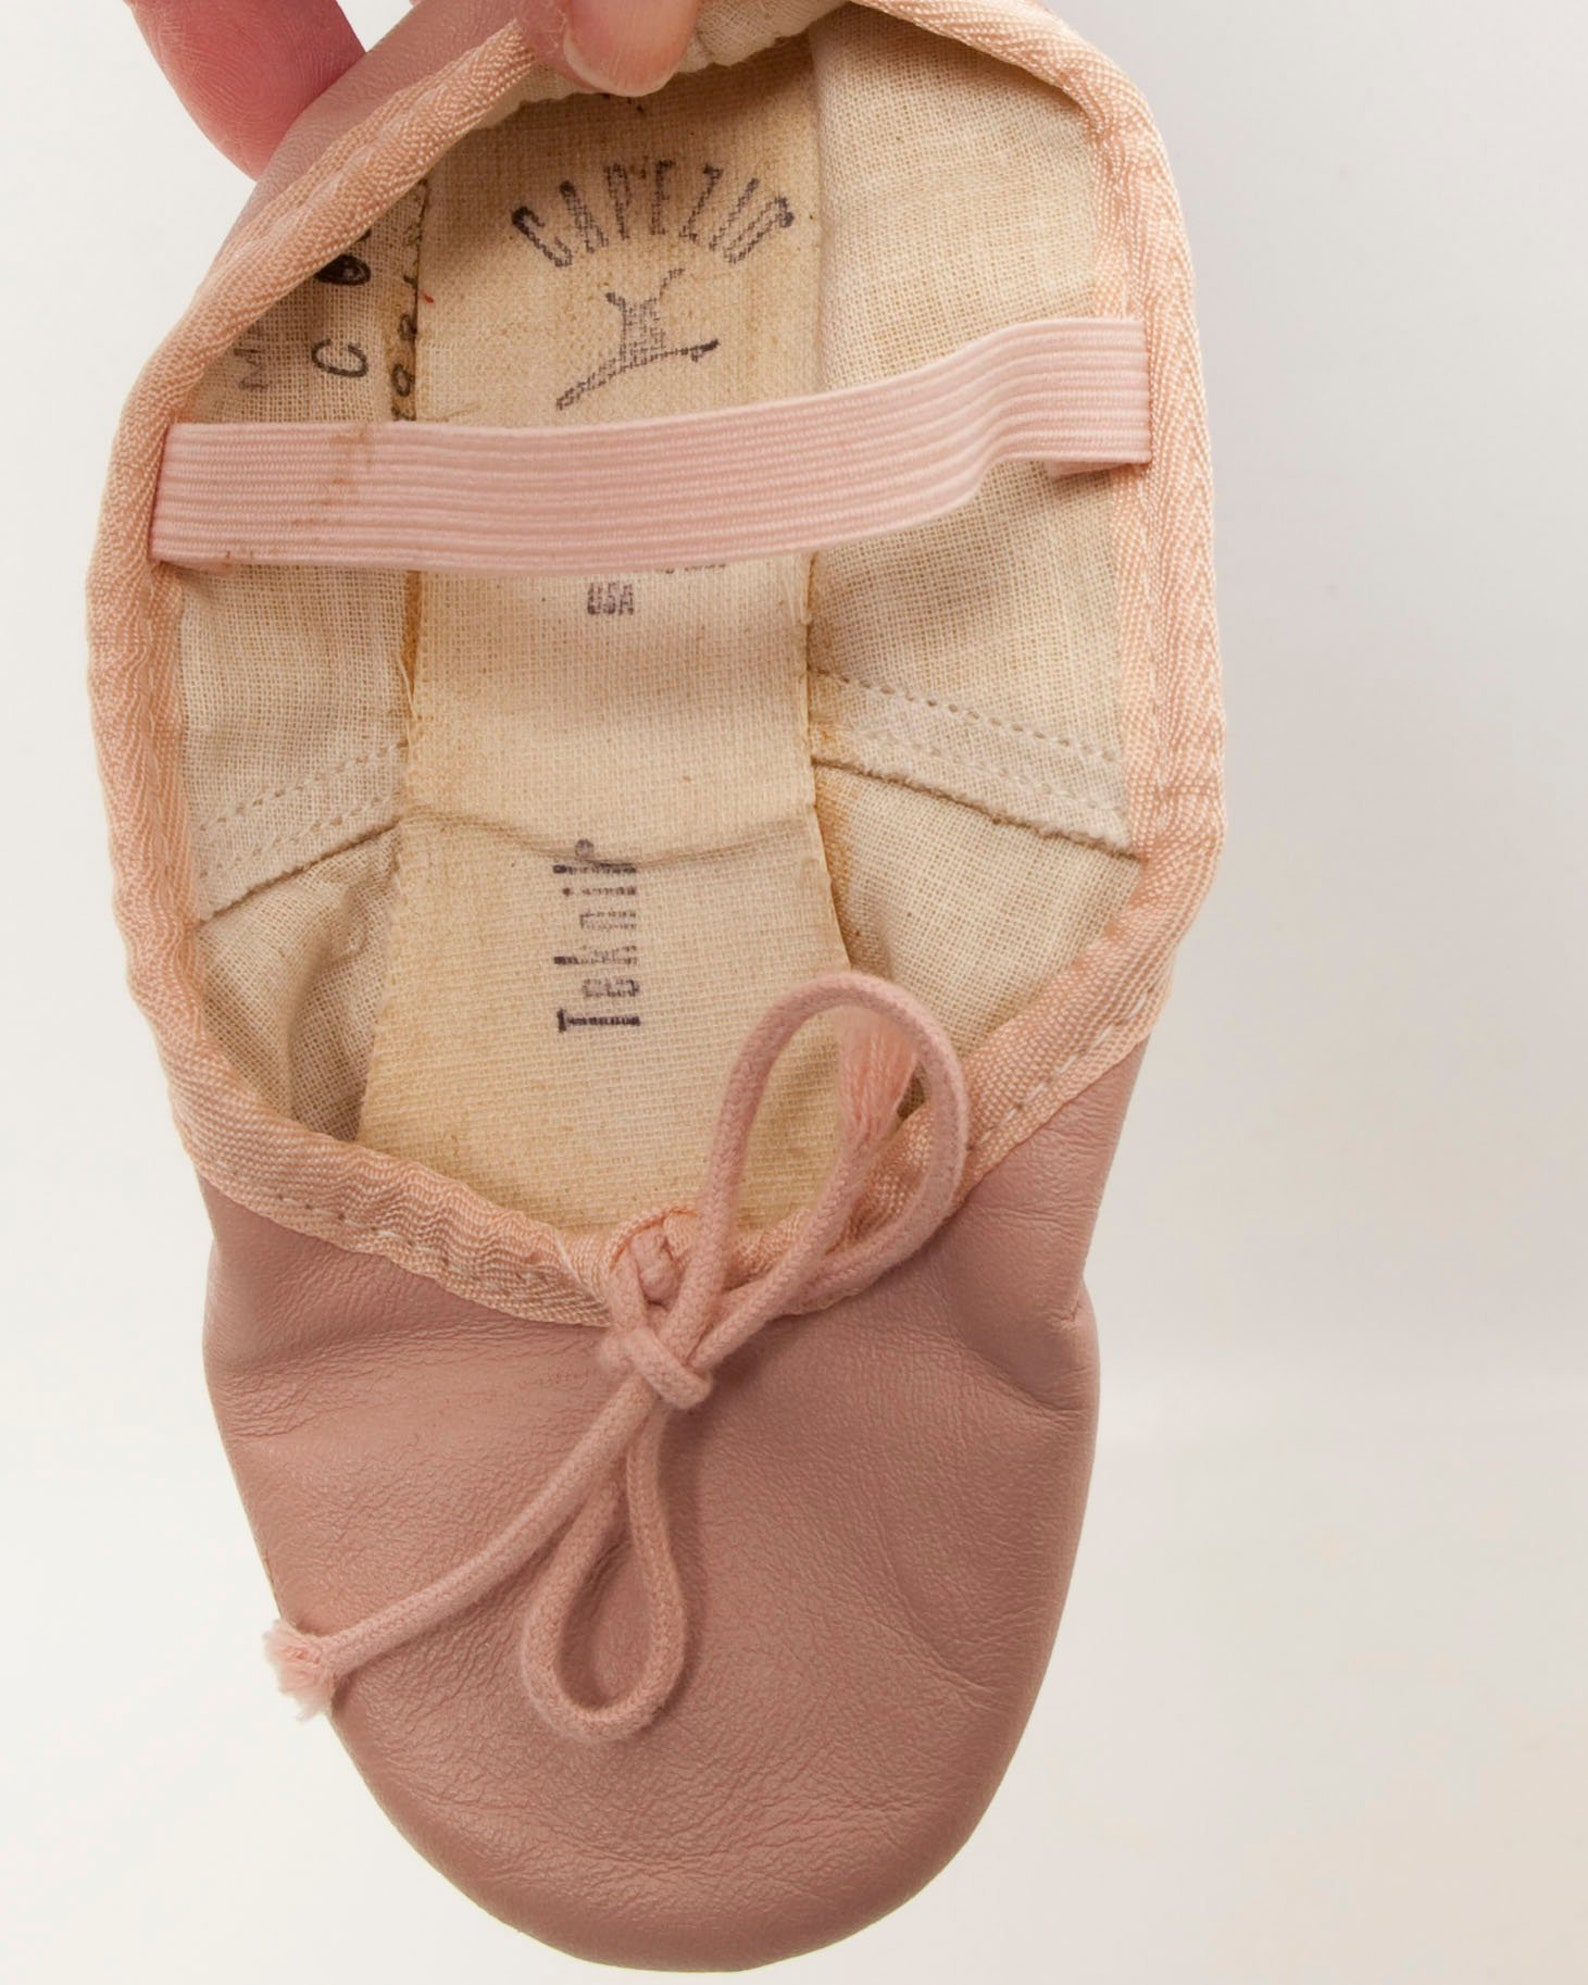 capezio teknik pink ballet slippers youth size 10 full sole leather ballet shoes dance shoes usa made ballerina footwear dance c